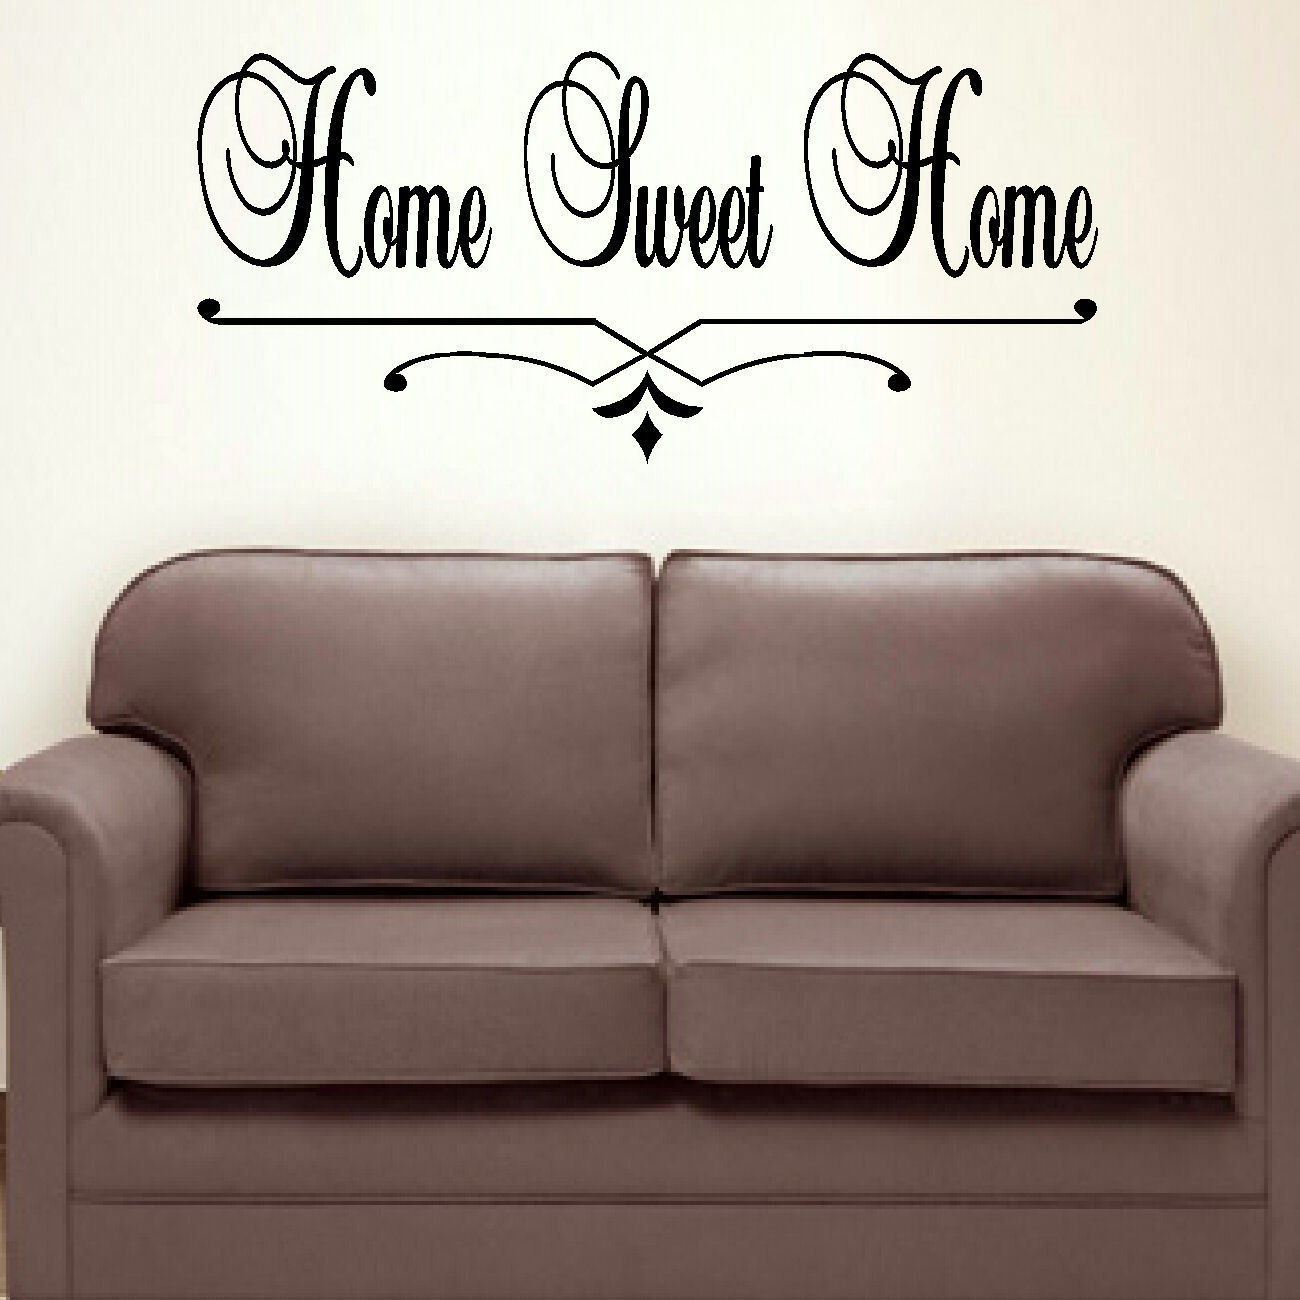 Large bedroom quote home sweet home wall art sticker for Bedroom wall art decor